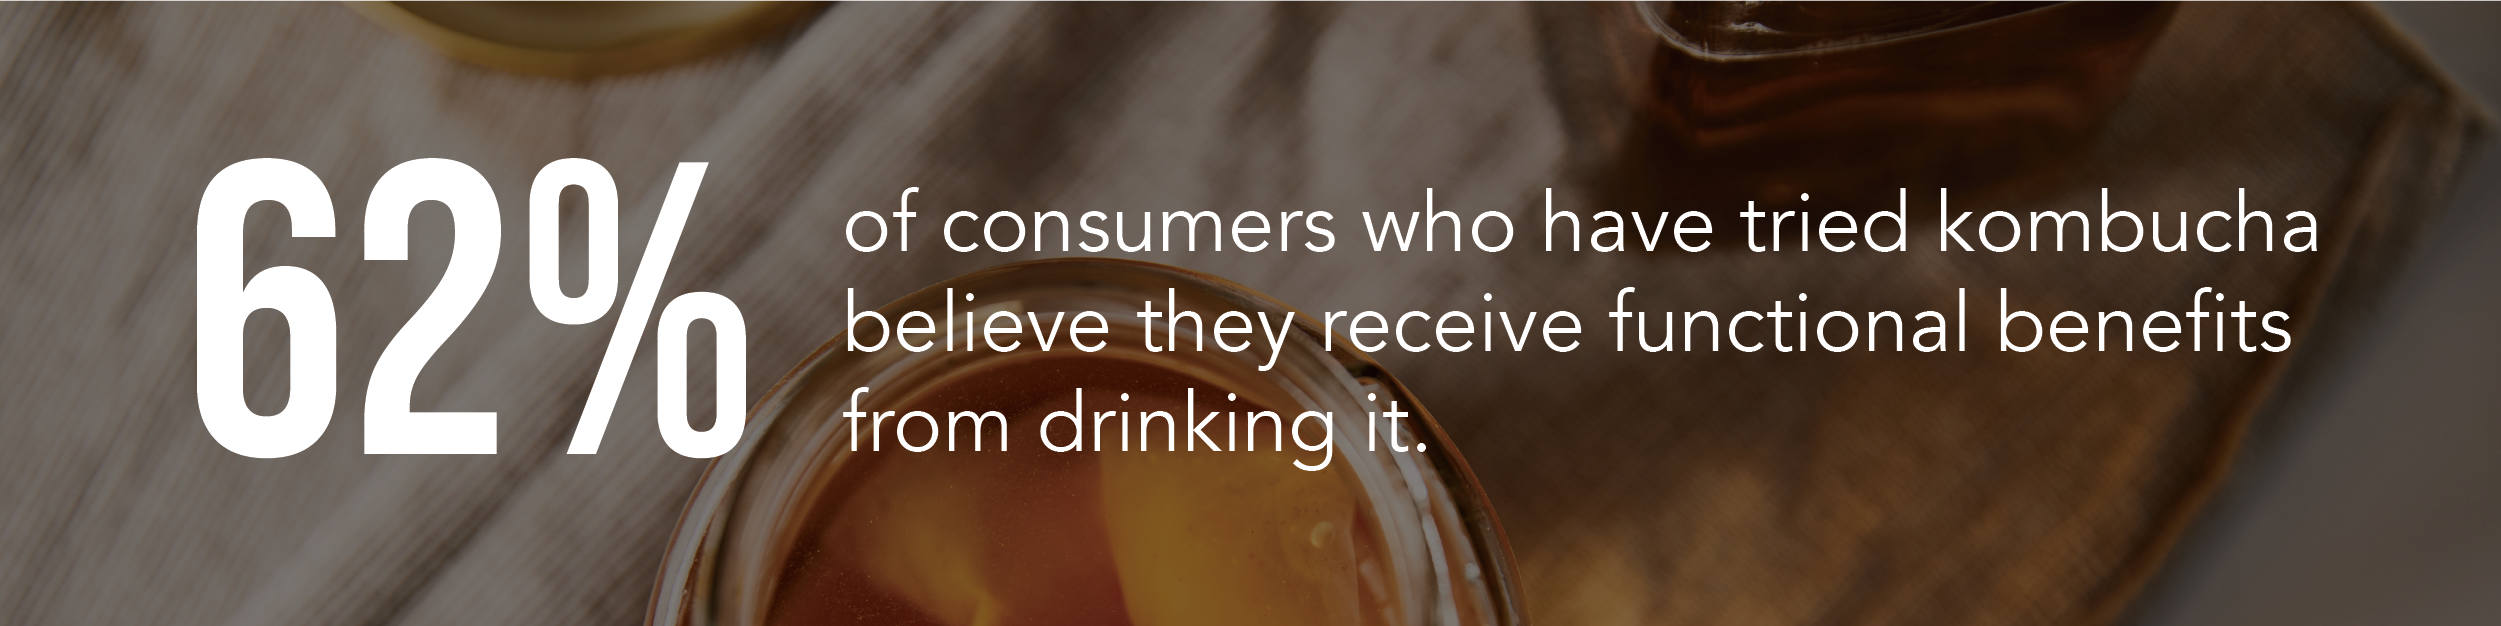 62% of Kombucha customers believe they receive functional benefits from drinking it